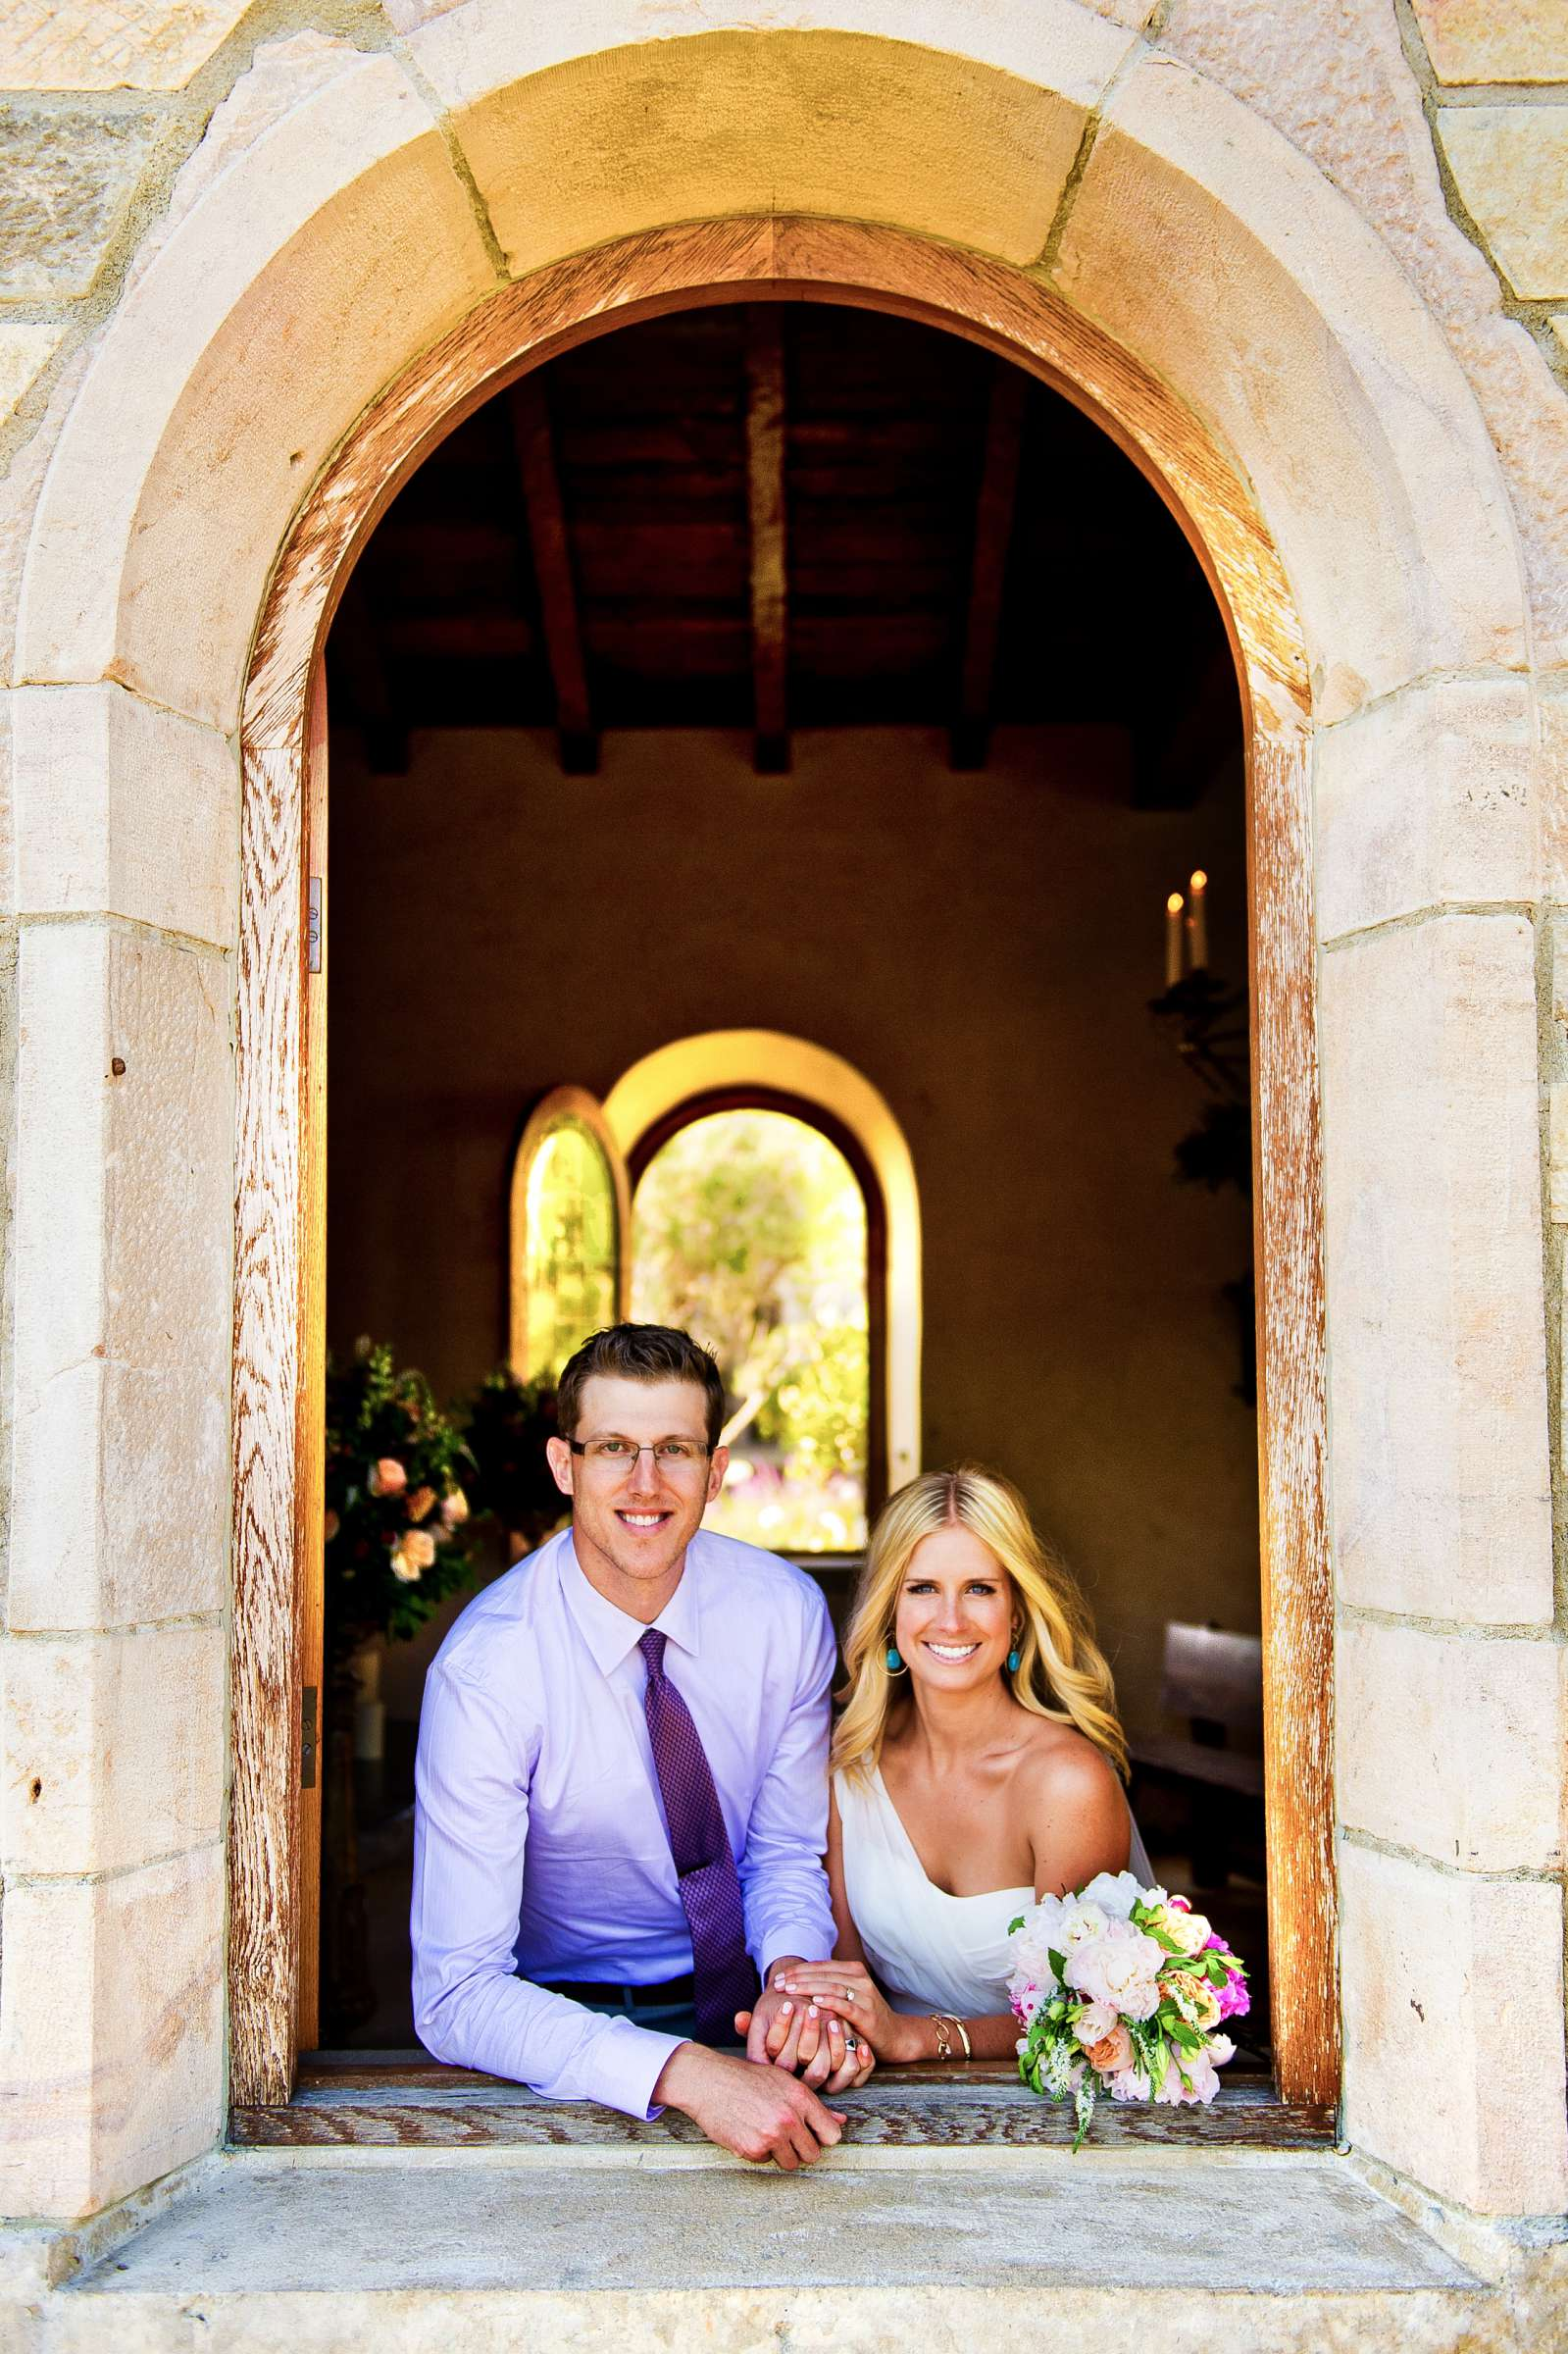 April and Aaron | San Diego Photographer - True Photography